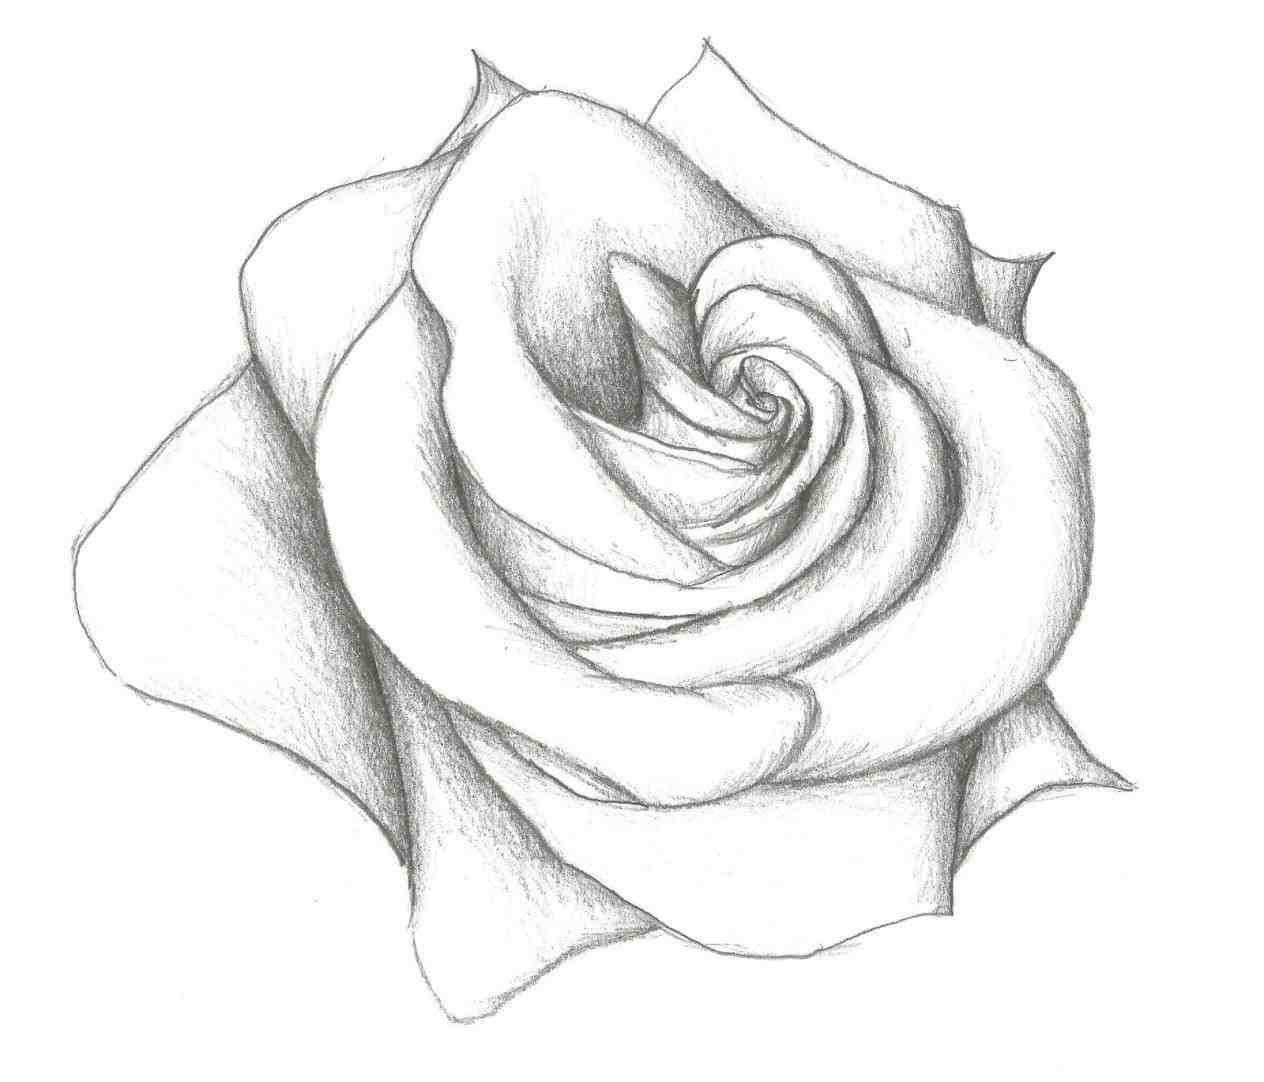 1264x1082 Flowercolor Sketch Pencil Drawings Flowers Of How To Draw